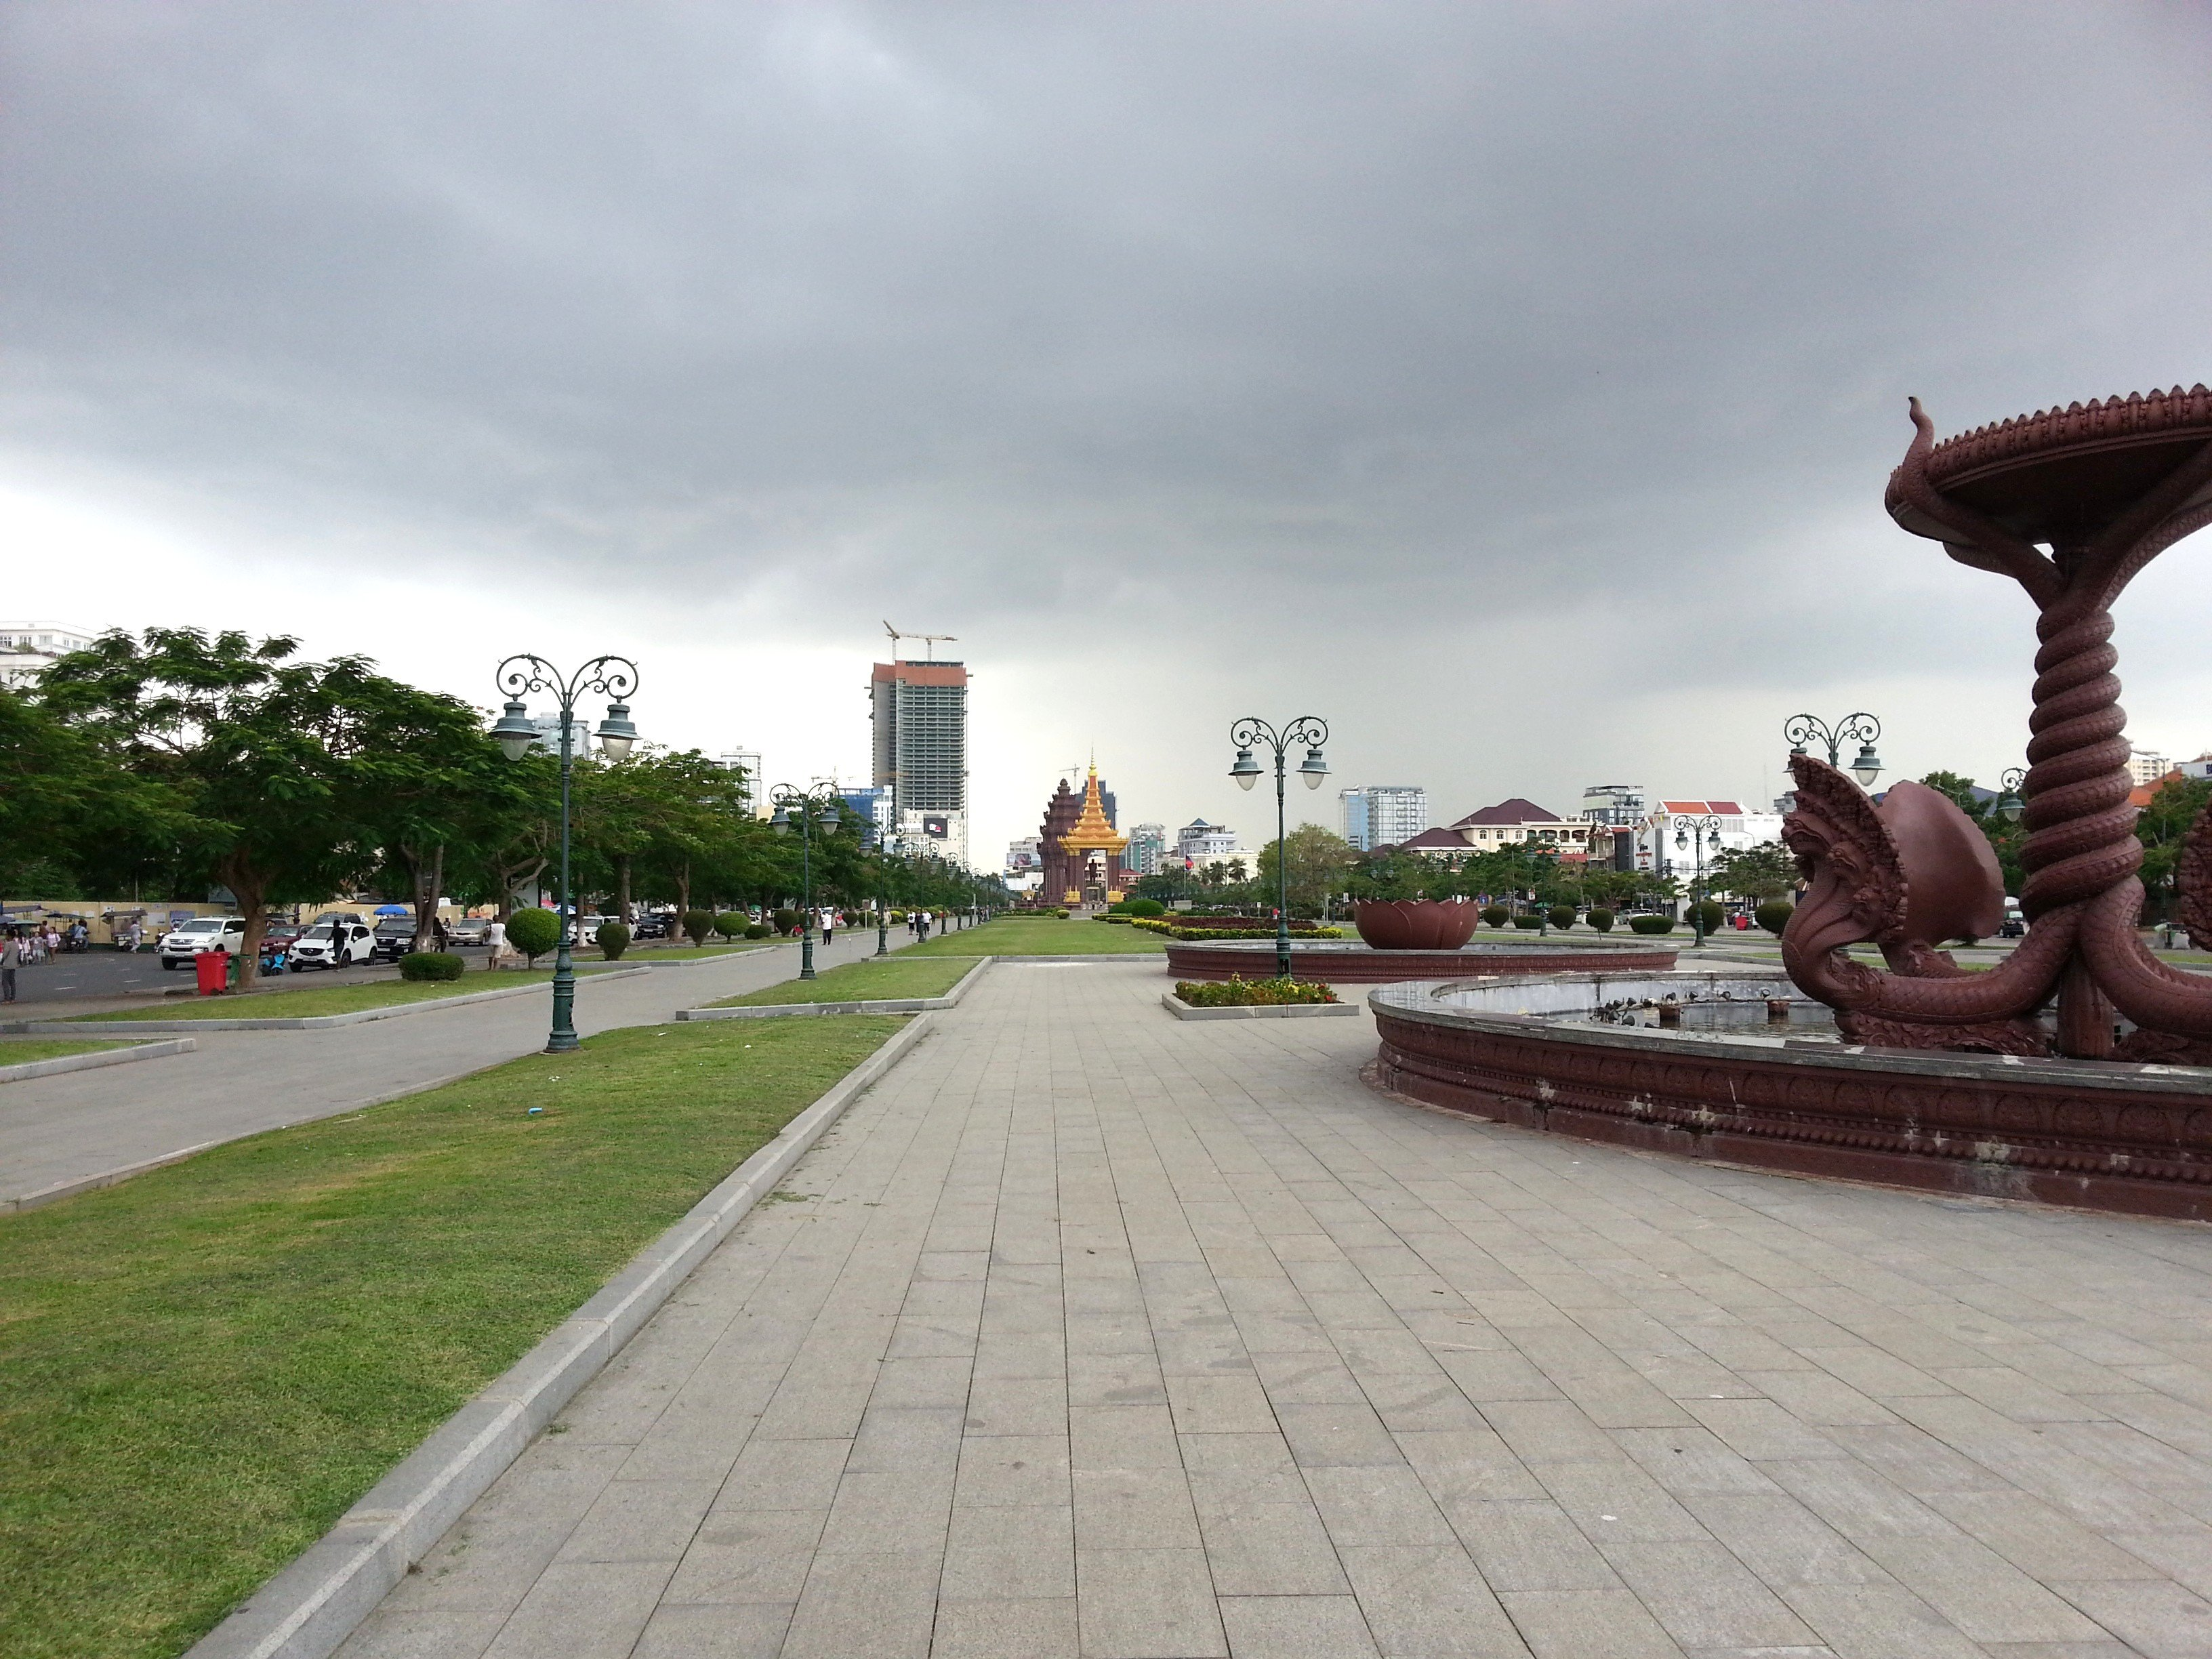 The statue of King Norodom is located in the East Independence Park